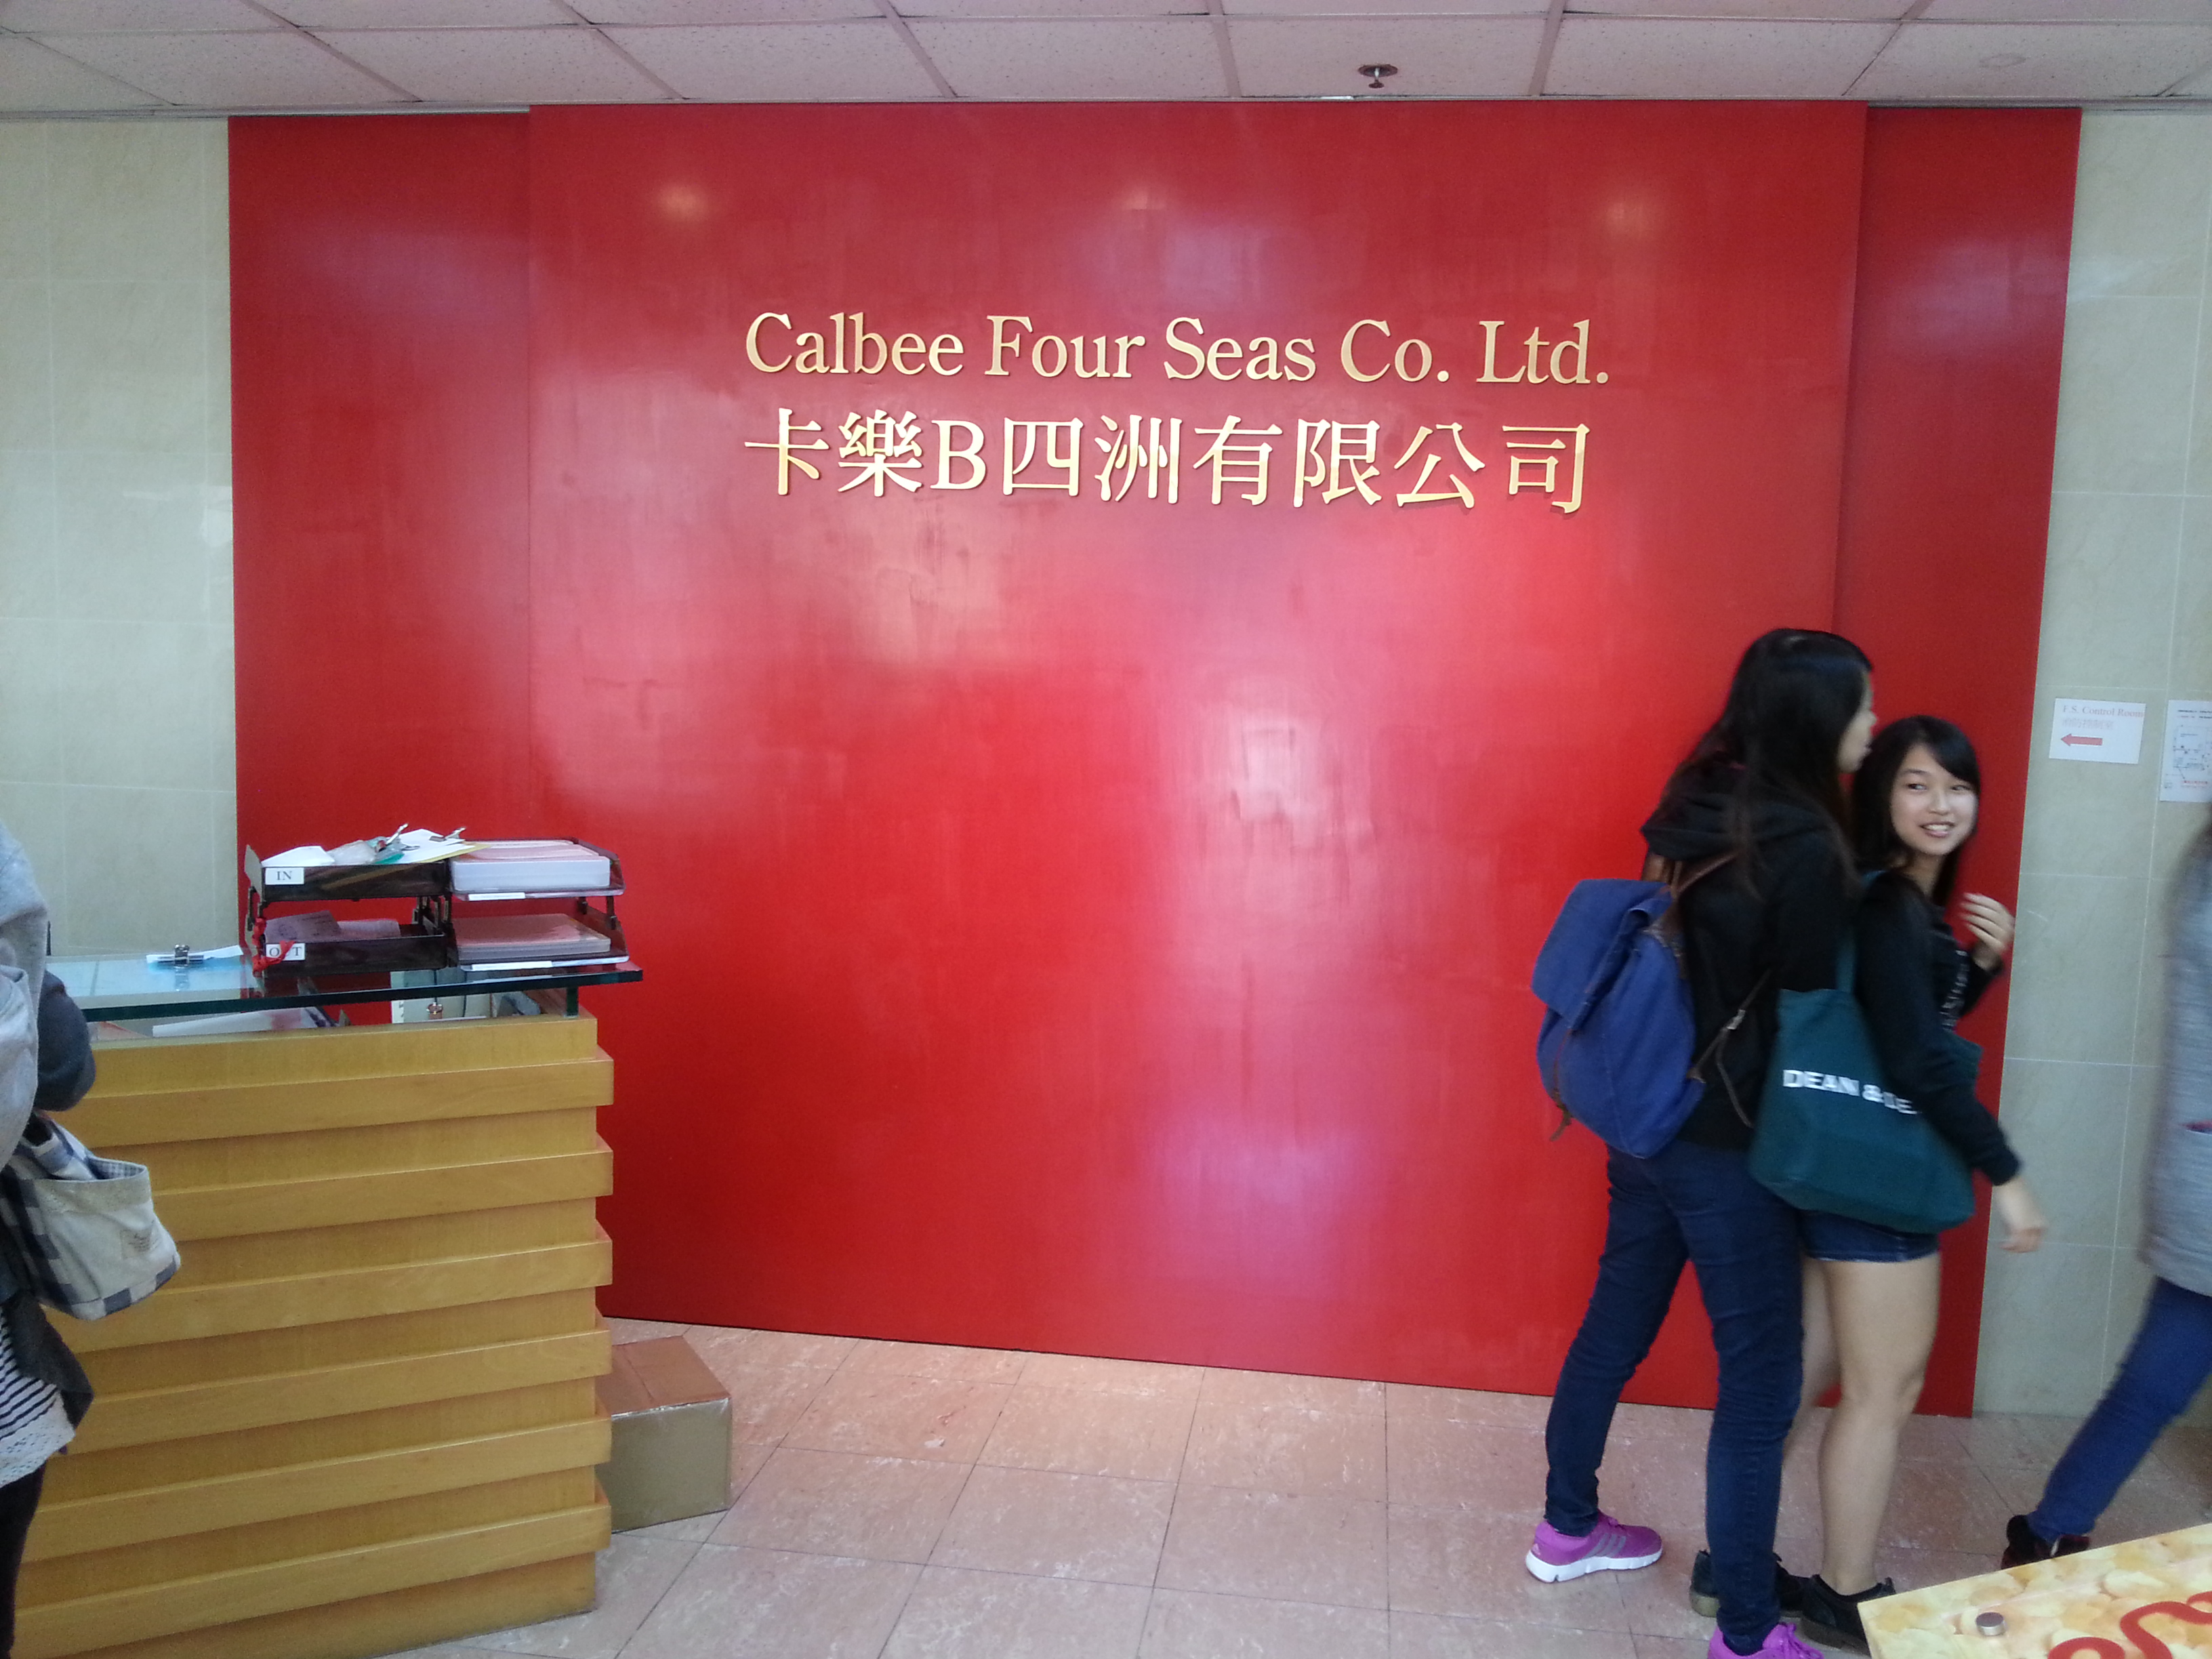 Visit to Calbee Hong Kong Factory in Tseung Kwan O - Photo - 5